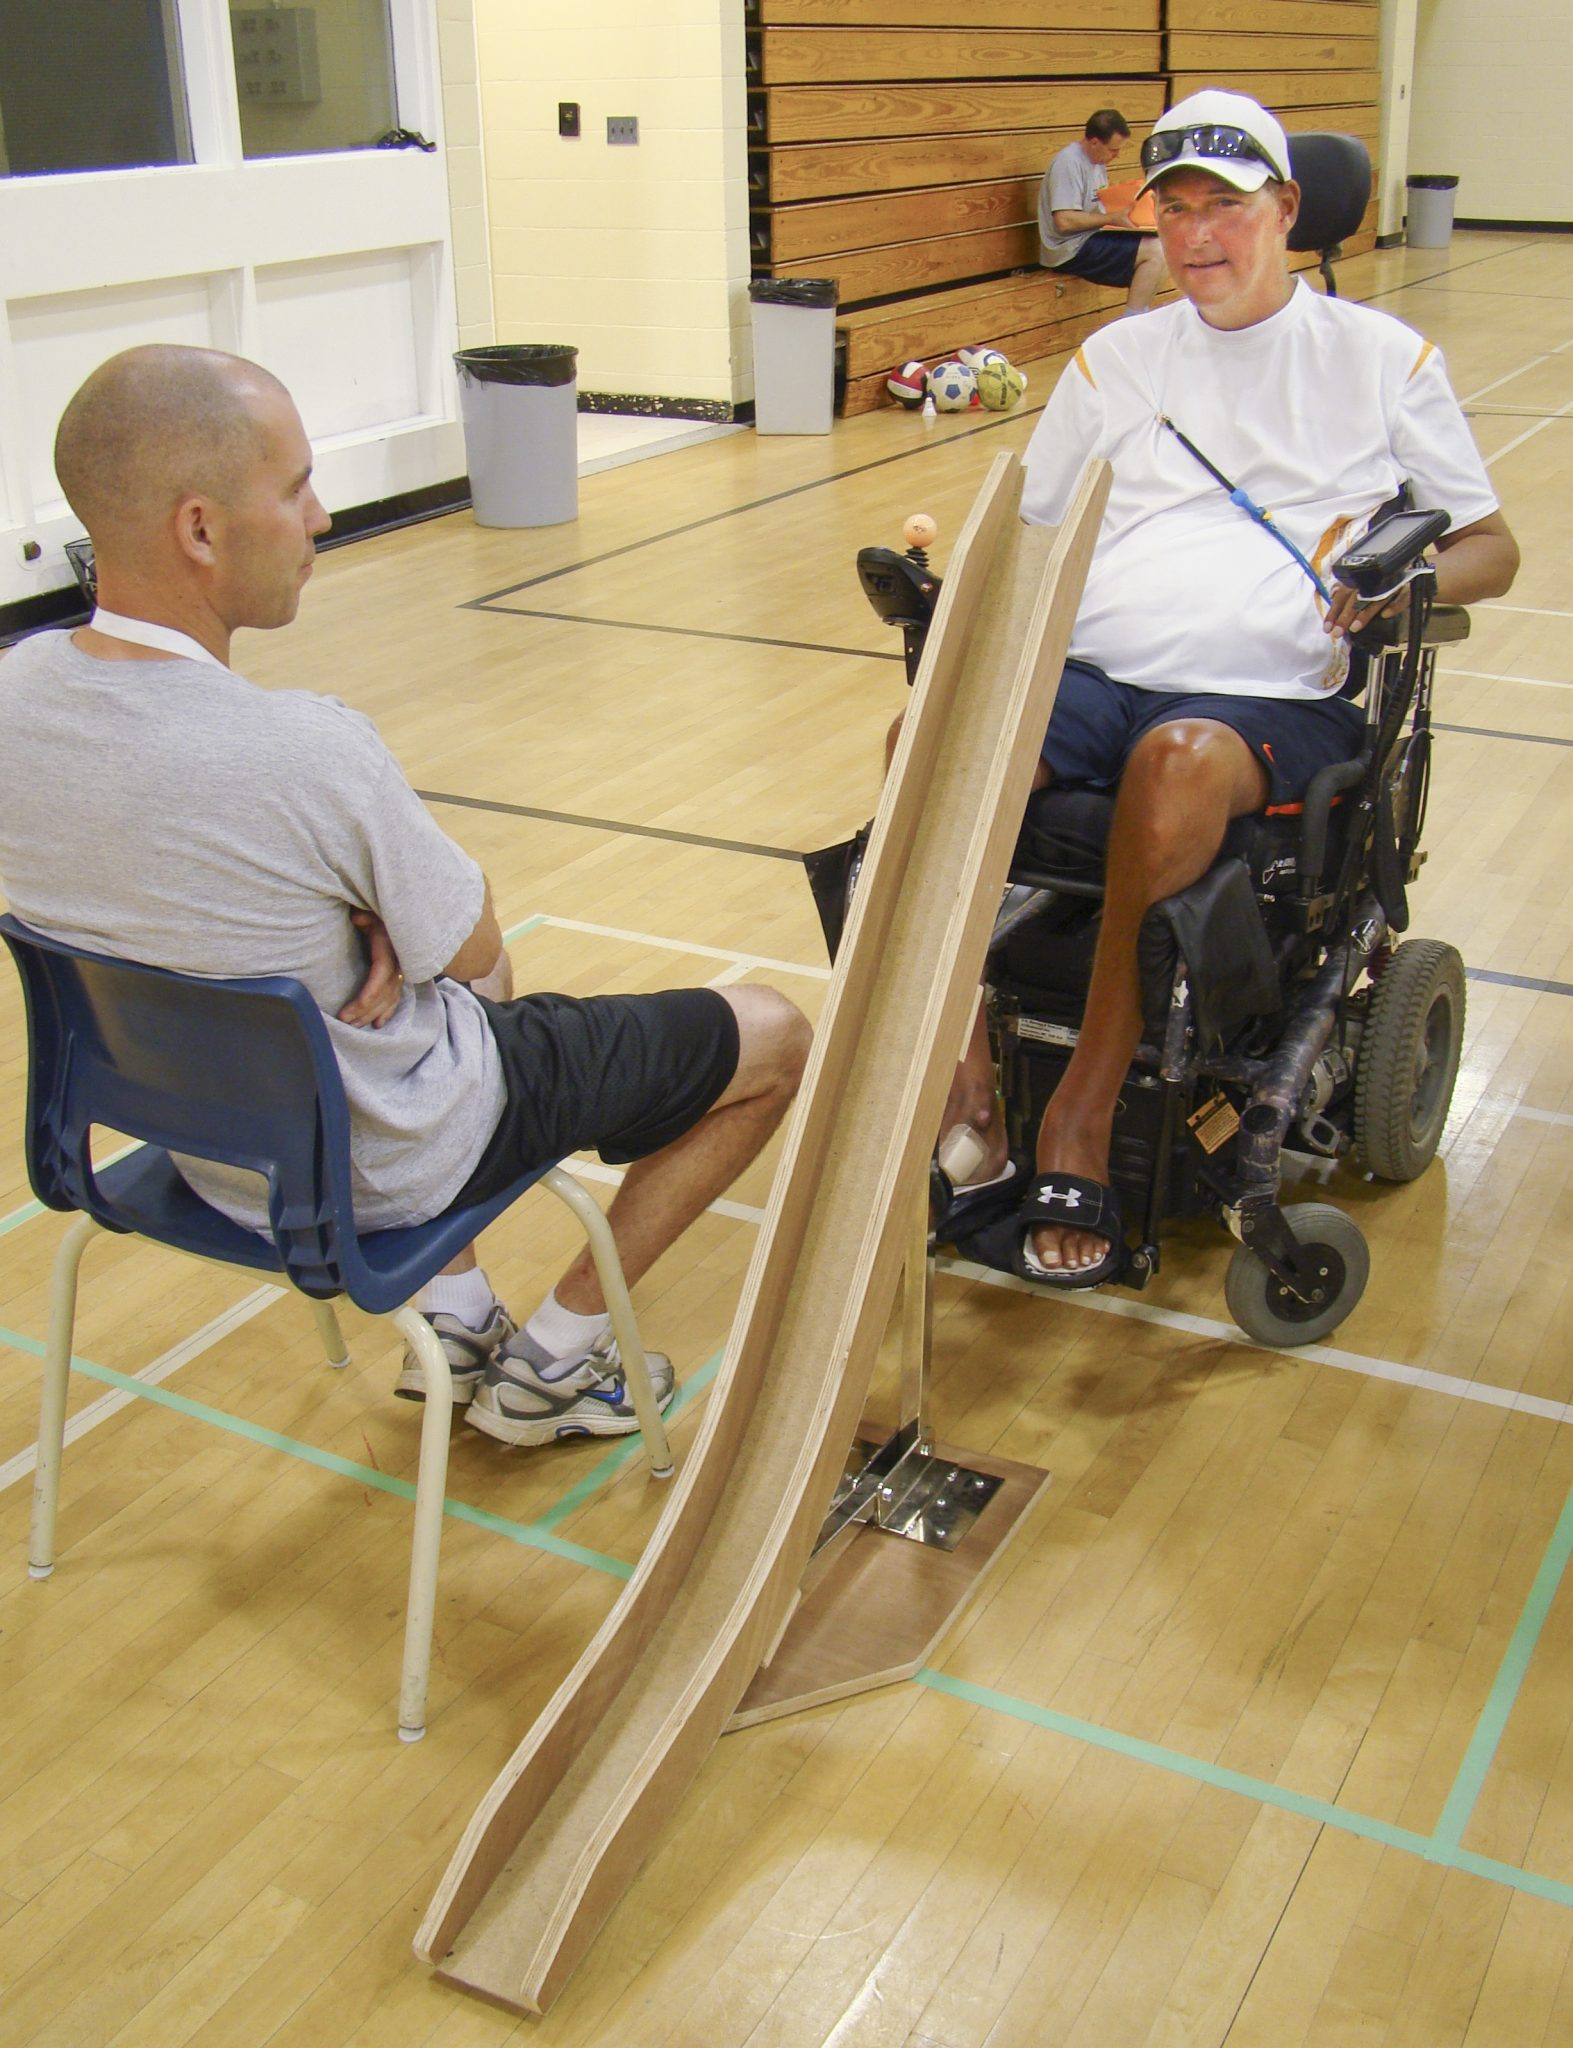 MacGyver me this! Engineers and tradespeople volunteer to adapt household tools and technology for people with disabilities